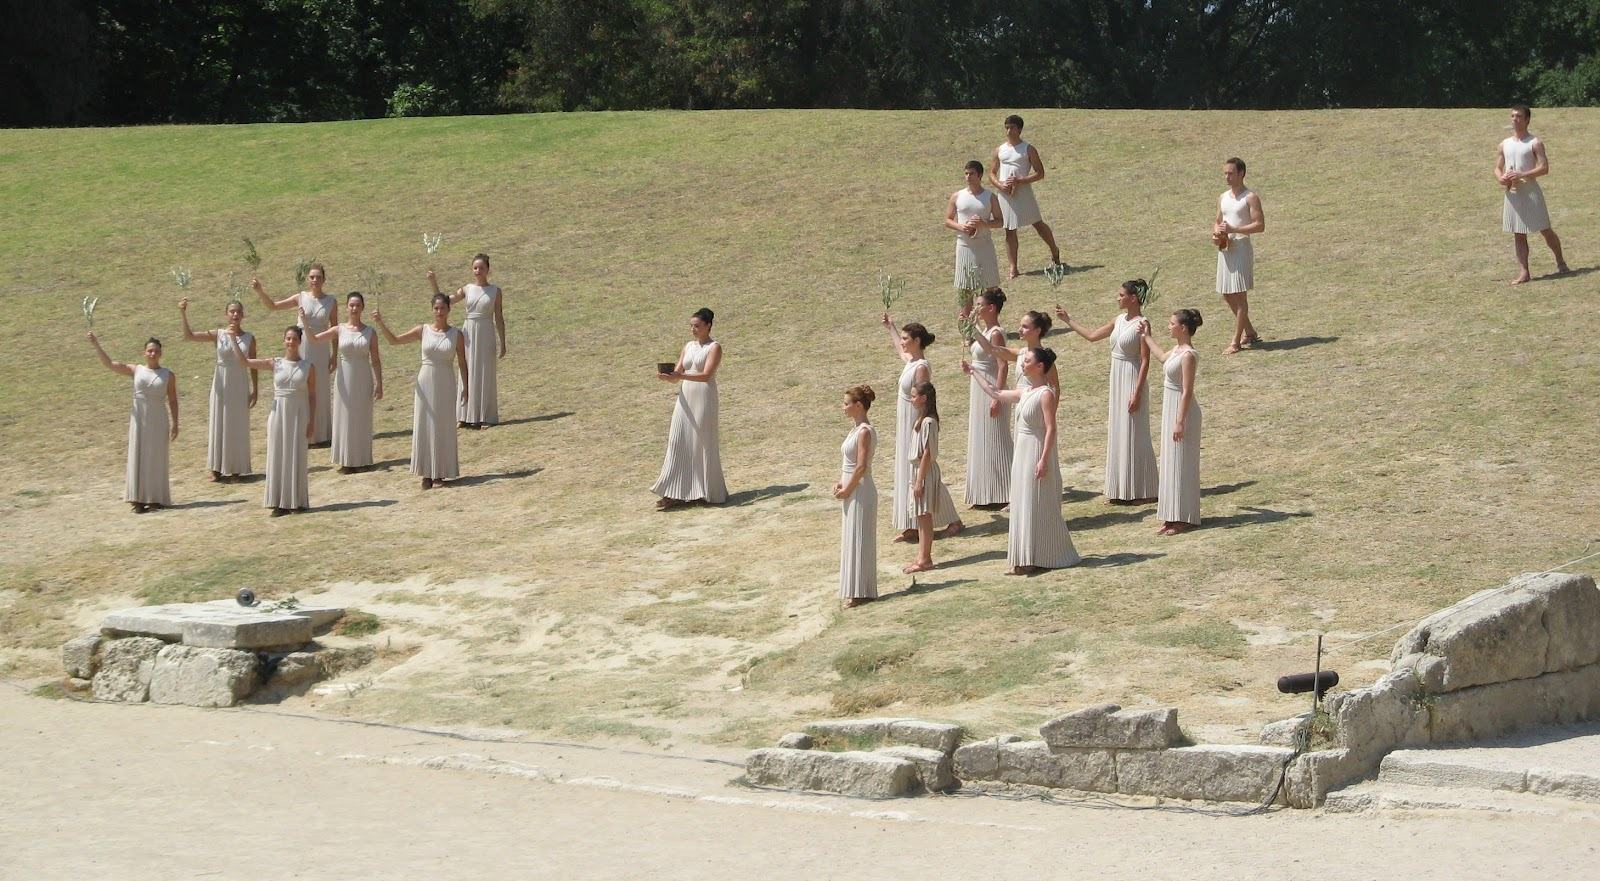 ... ceremony-olympic flame.jpg